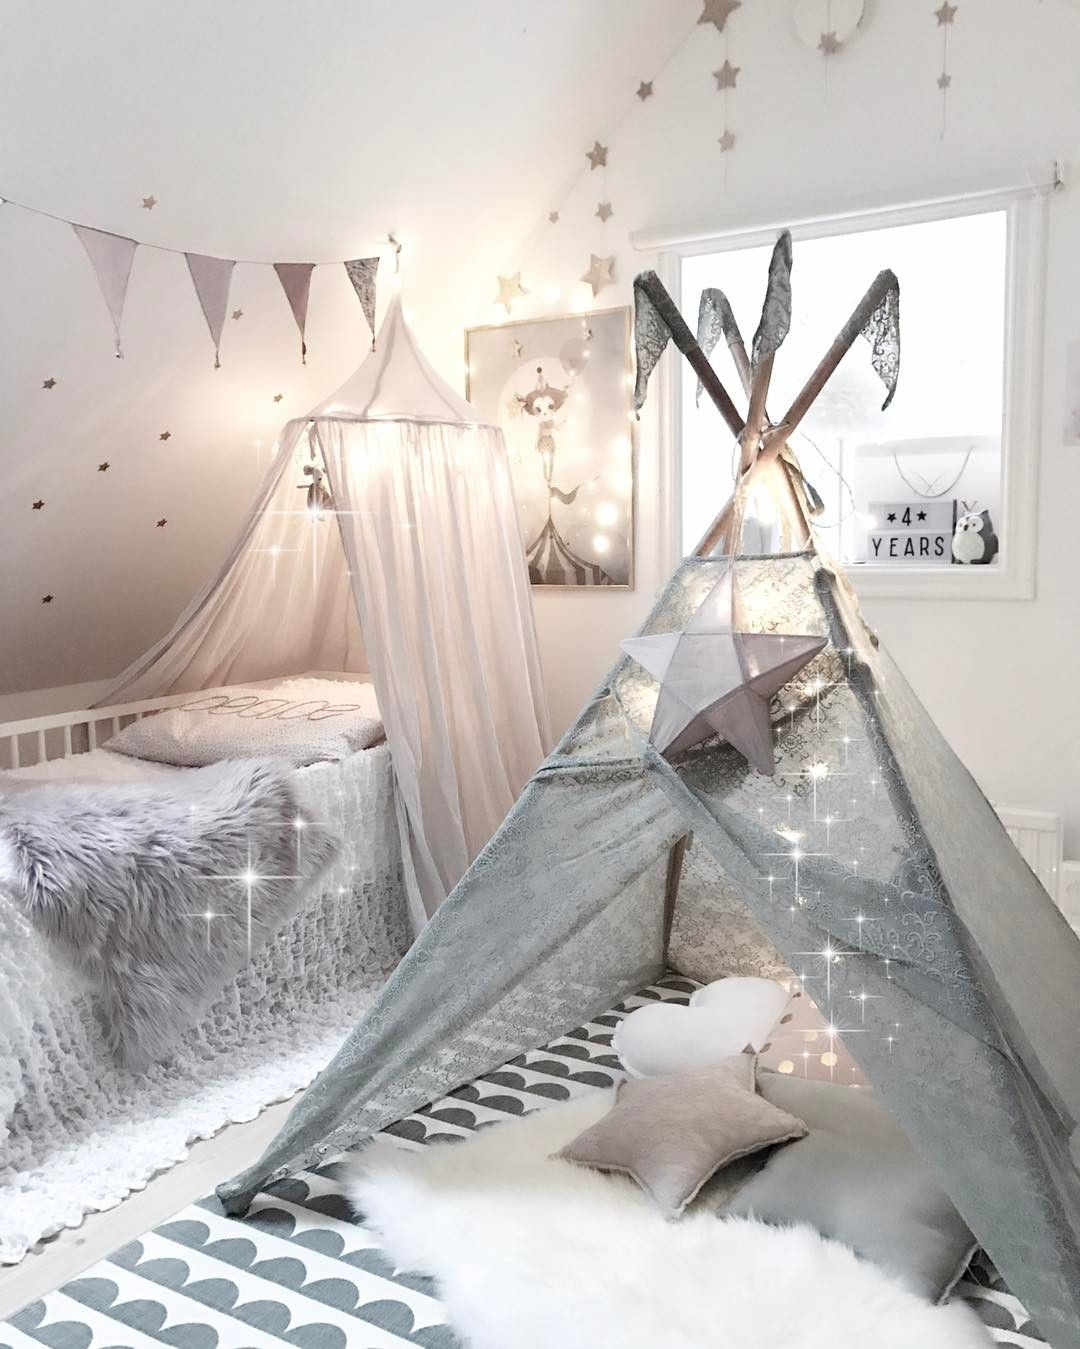 Teepee Time O Clock Numero74 Lace Baroque Silver Grey Teepee Adorned With Stars And Magic This Room S Girls Bedroom Small Room Bedroom Teenage Girl Bedrooms